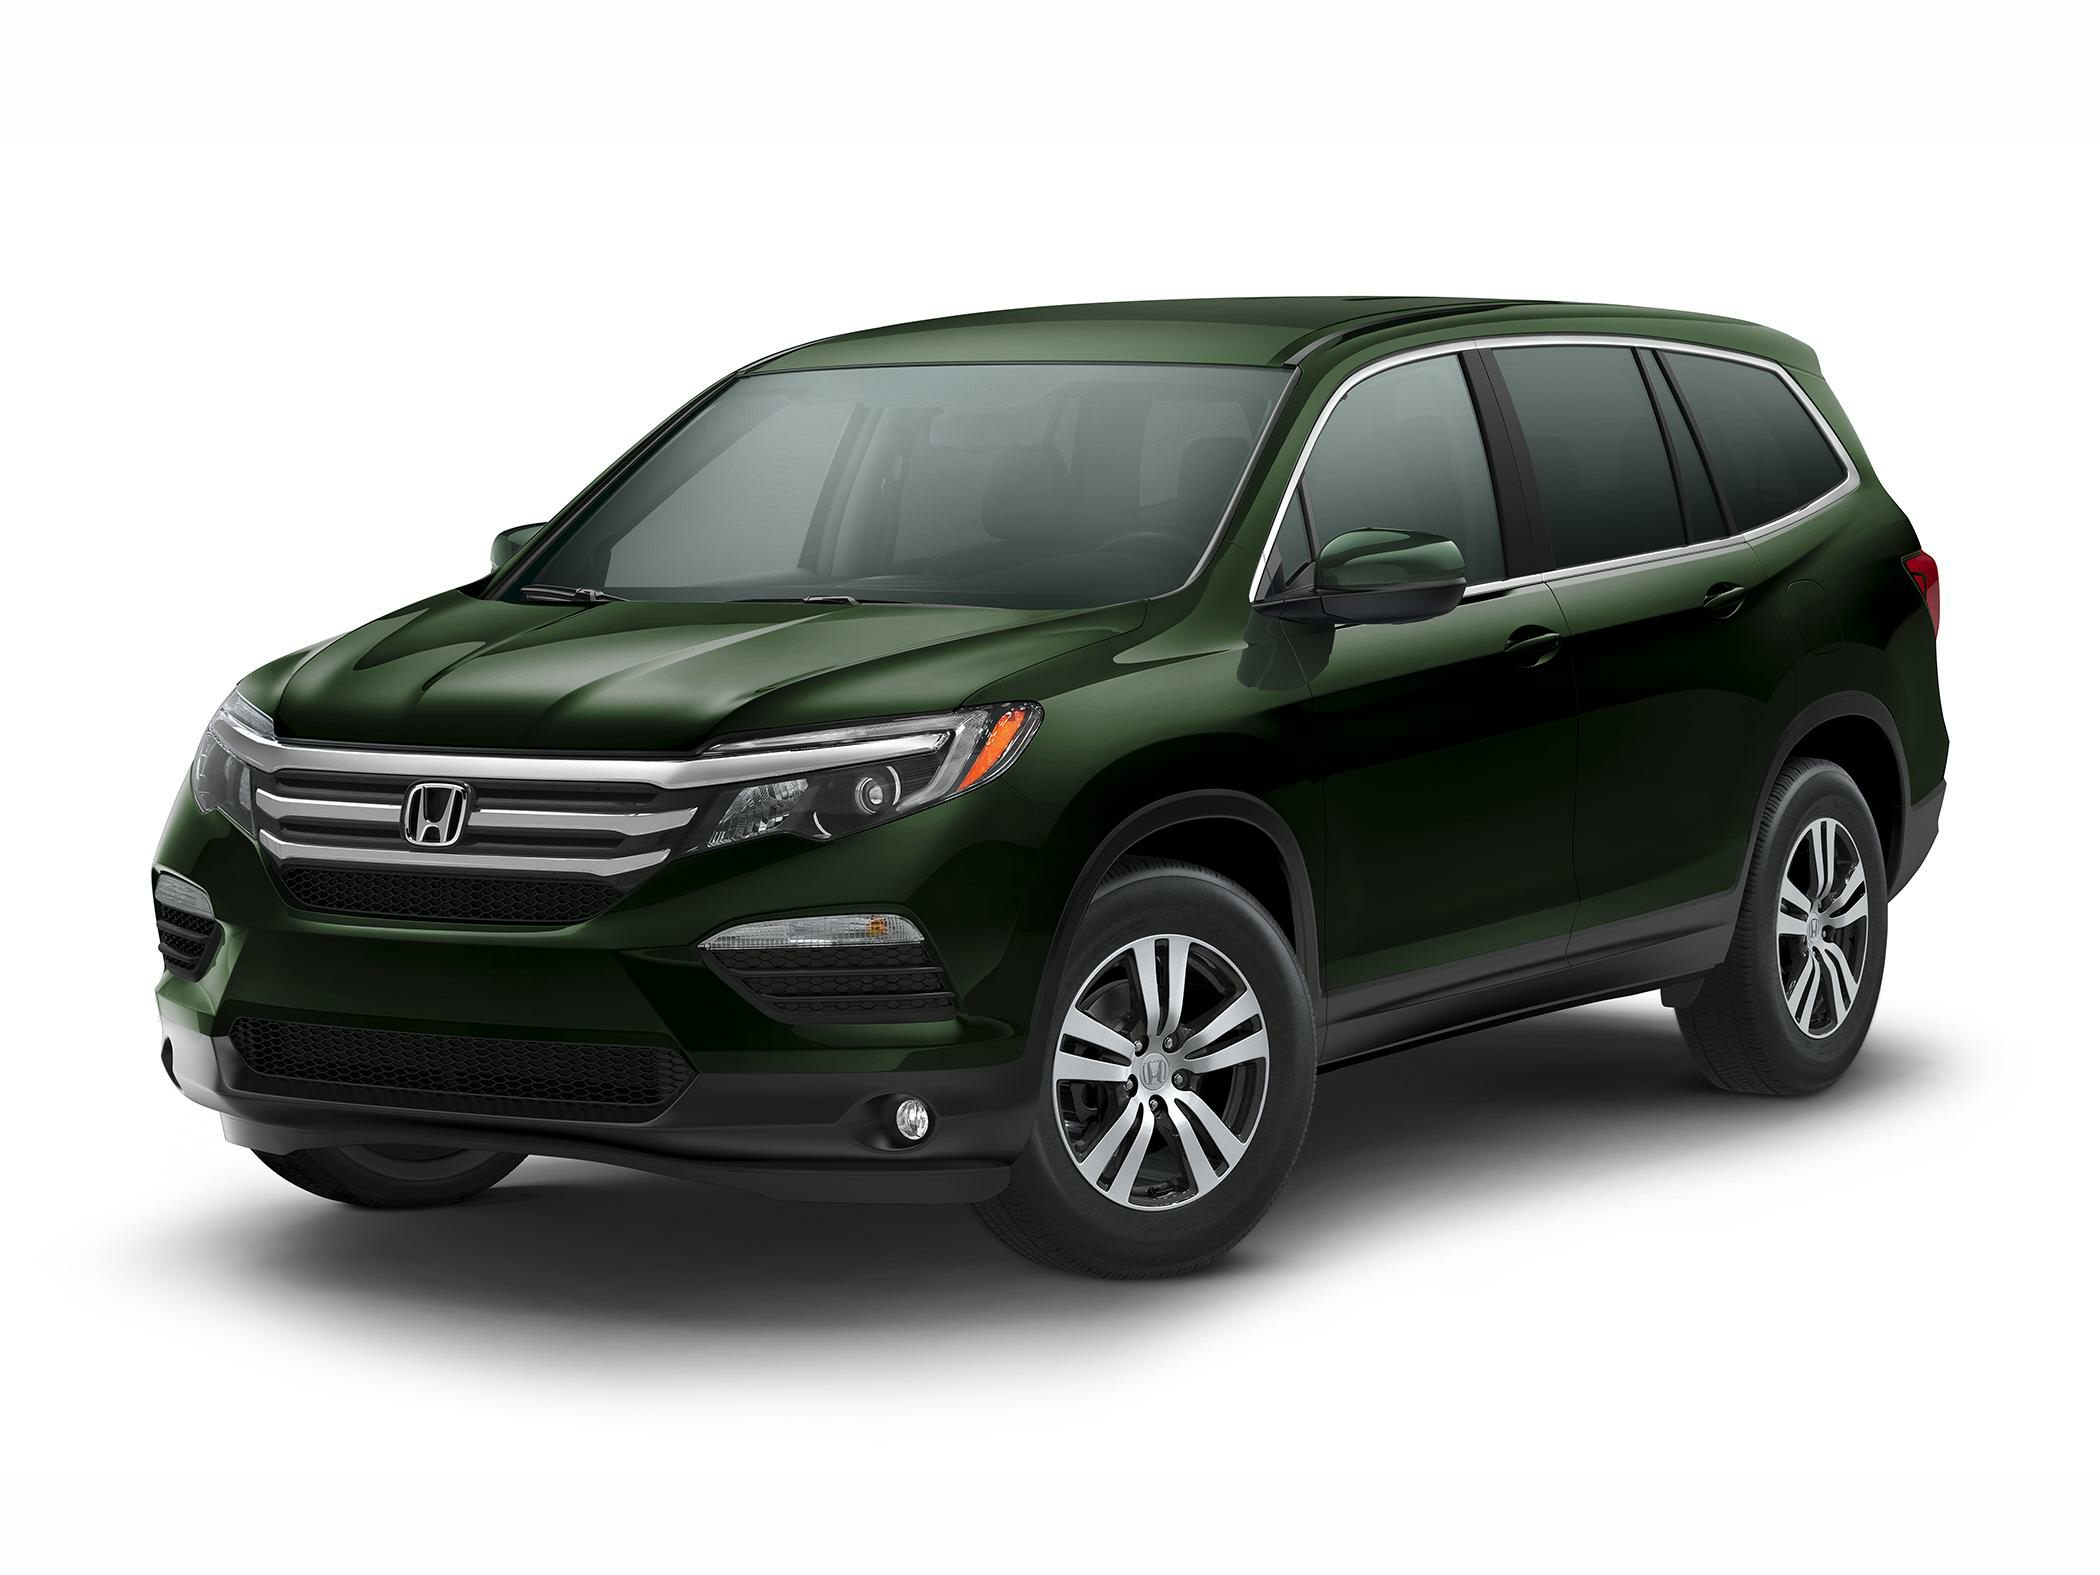 Image result for 2017 Honda Pilot